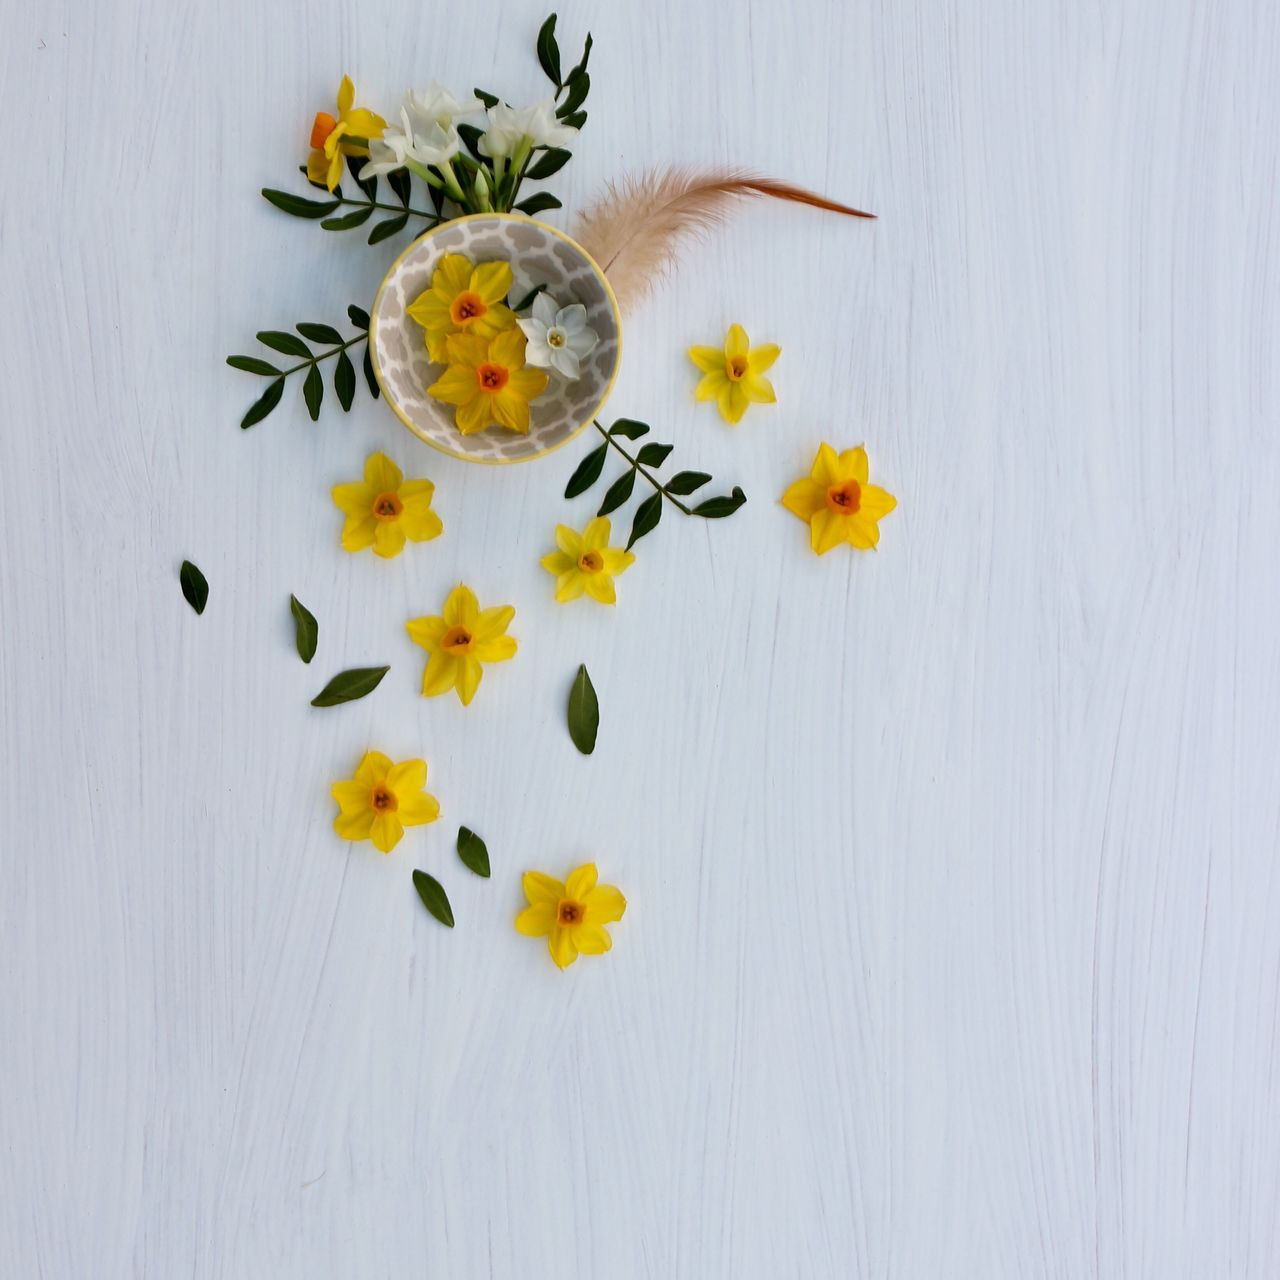 High Angle View Of Yellow Flowers On Table